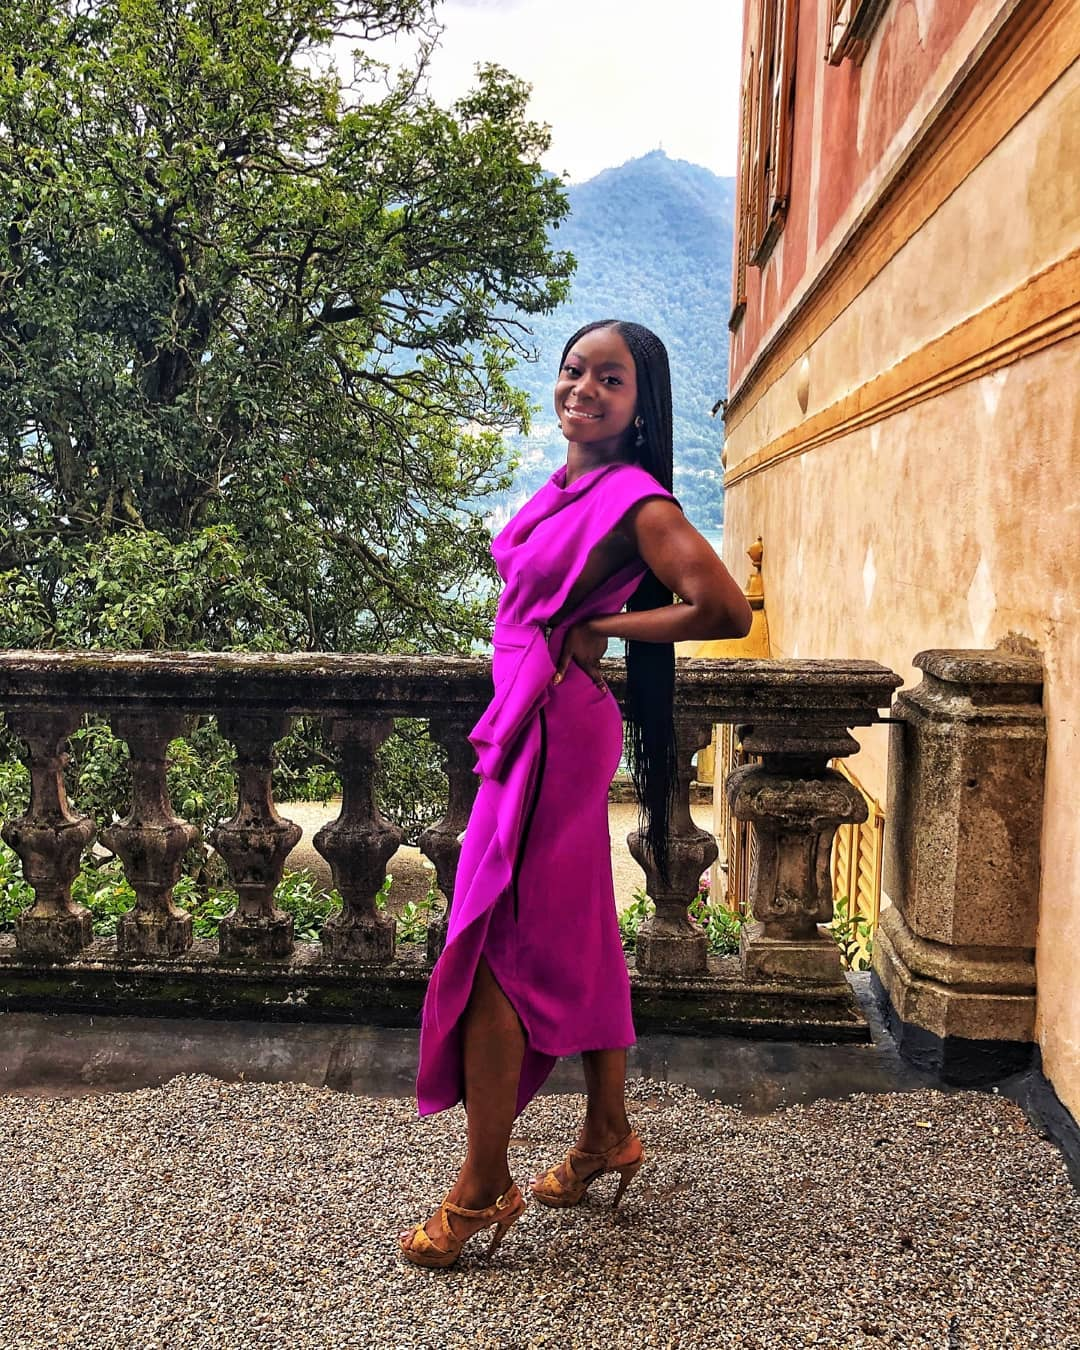 Afua Osei Pulls Off Her Most Glamorous Trip Seems to be But on Her Italian Journey to Lake Como and Venice